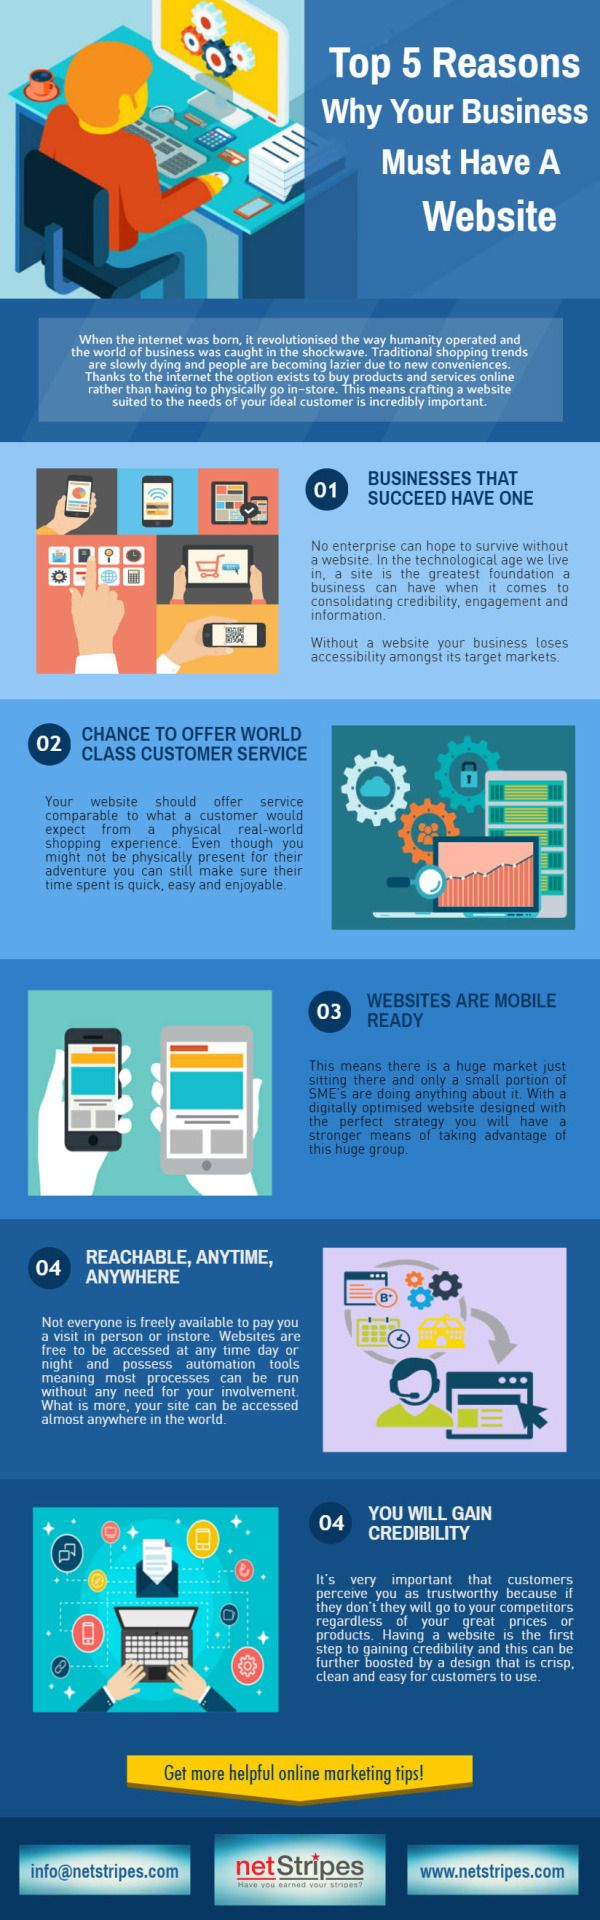 Top 5 Reasons Why Your Business Must Have A Website. #AffordableWebSolutions #WebDevelopmentAgencySydney